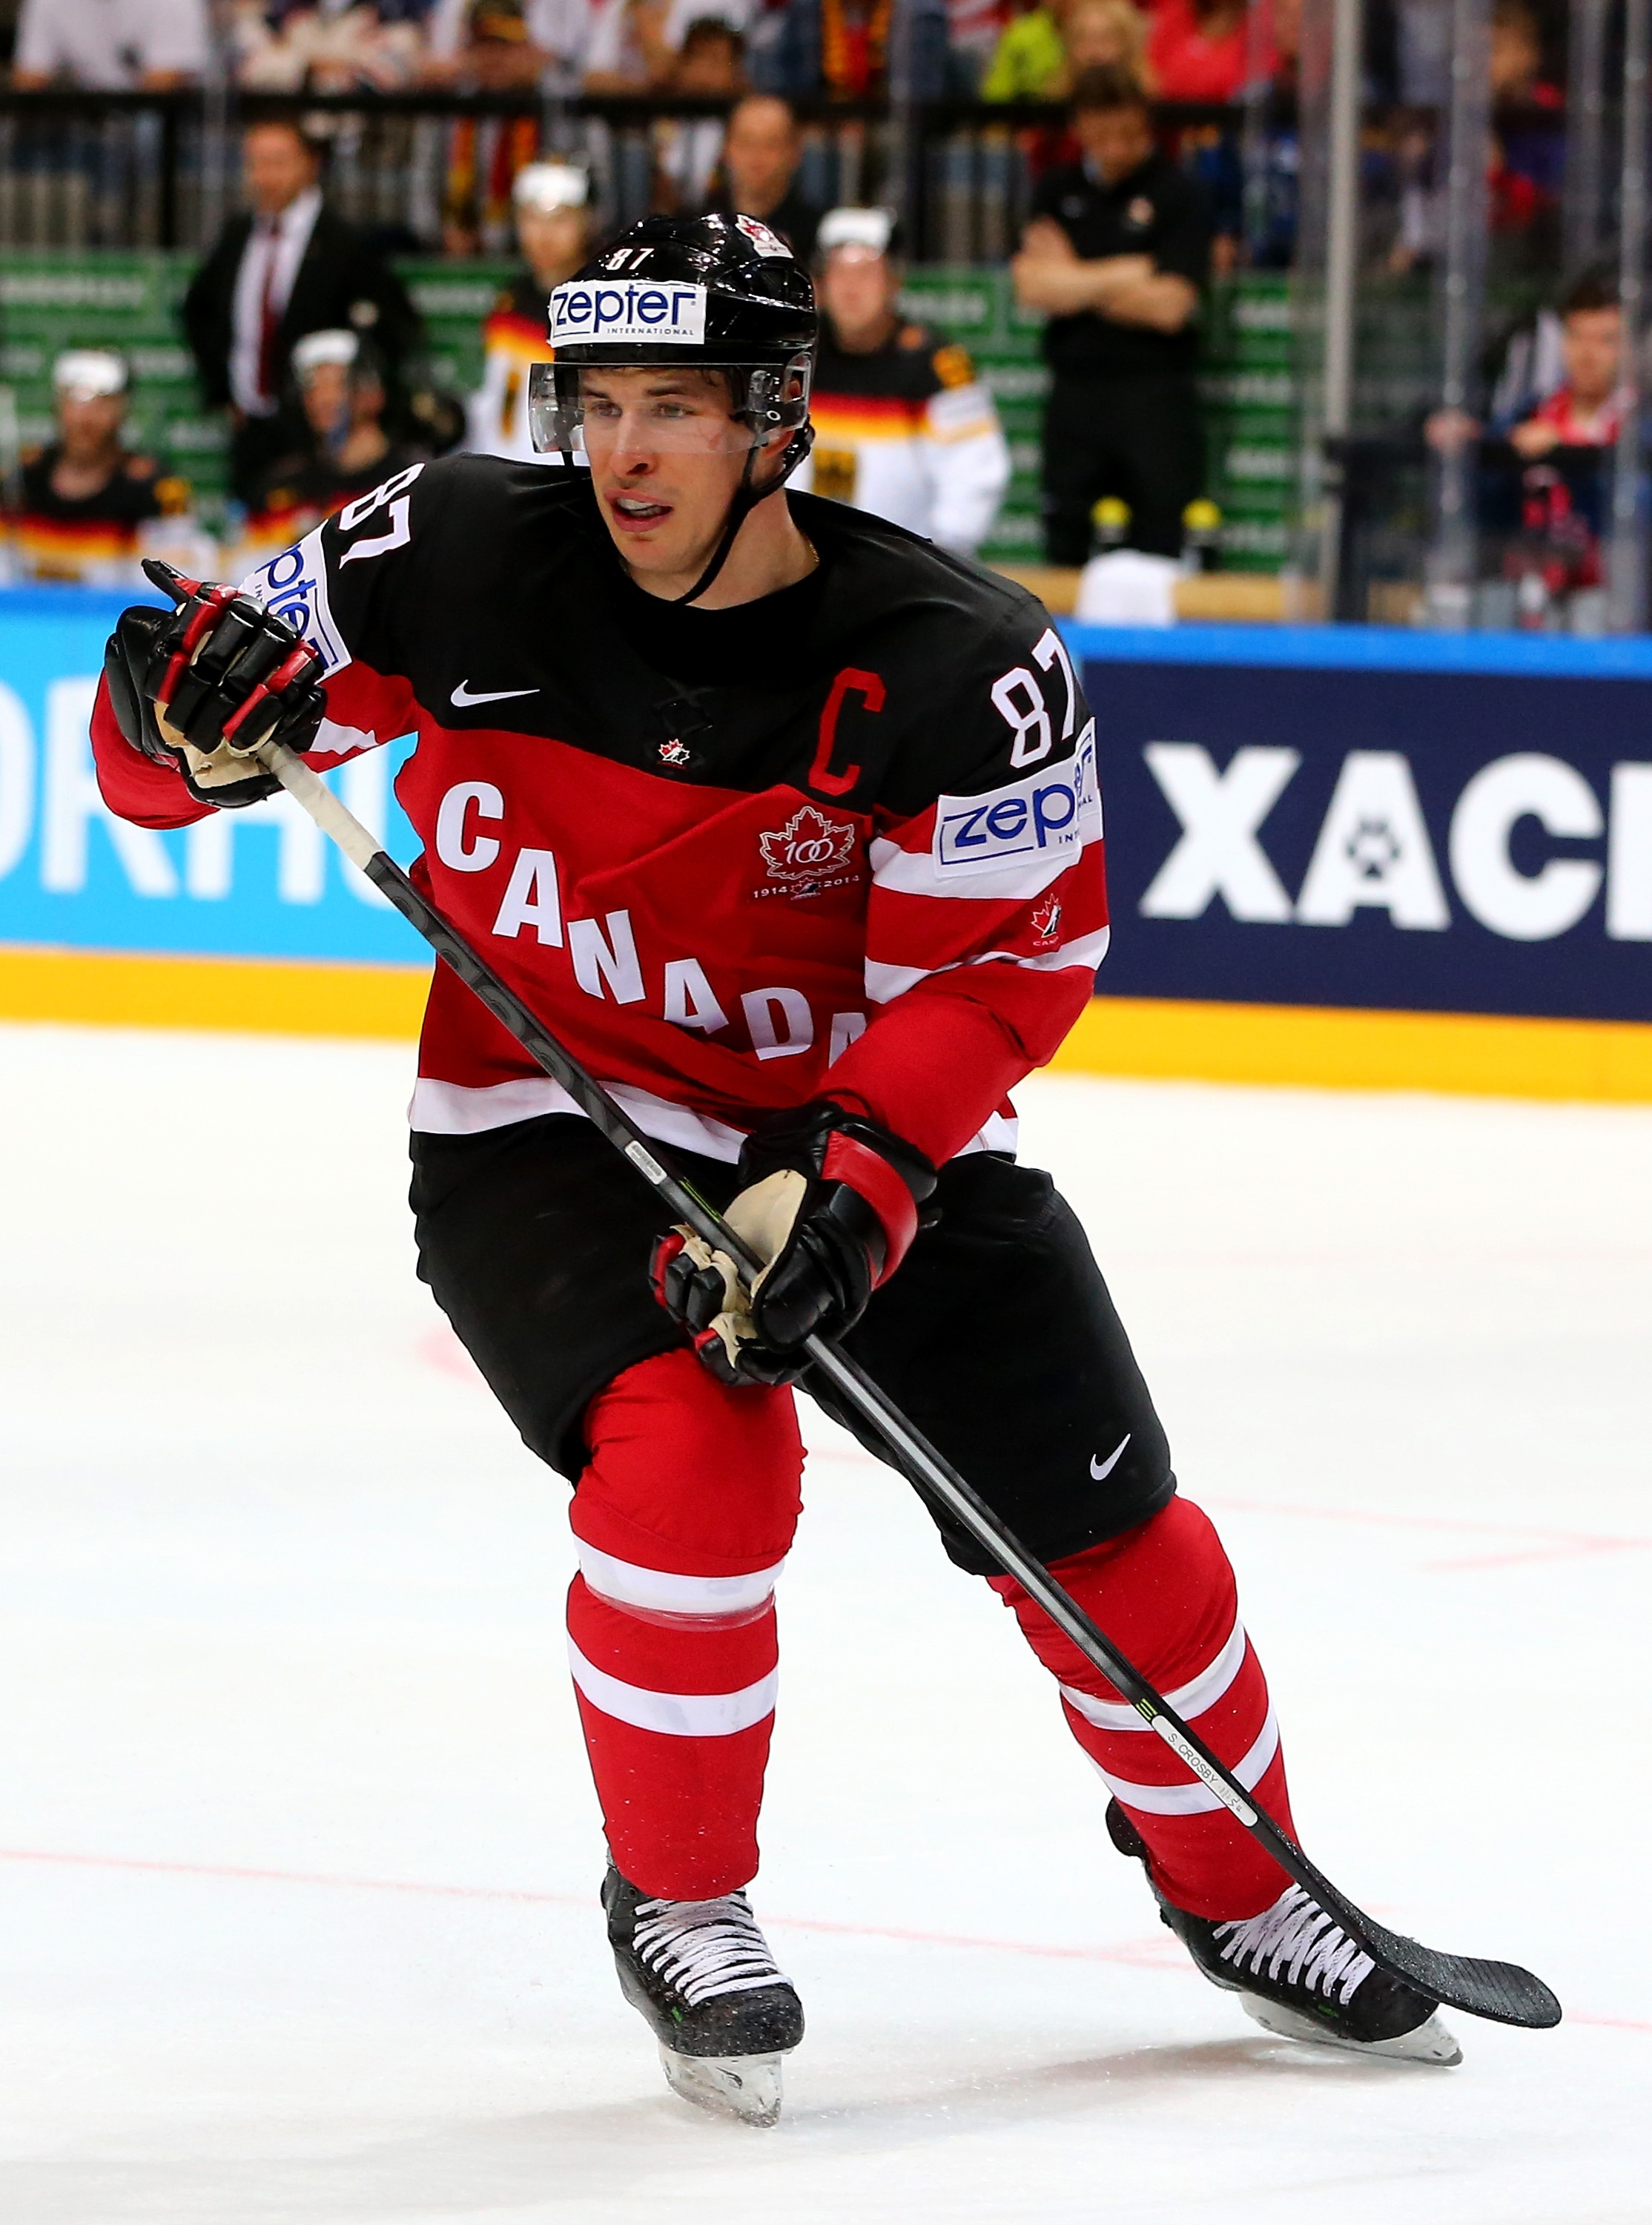 Sidney Crosby, of Canada, skates against Germany during an IIHF World Championship group match in 2015.